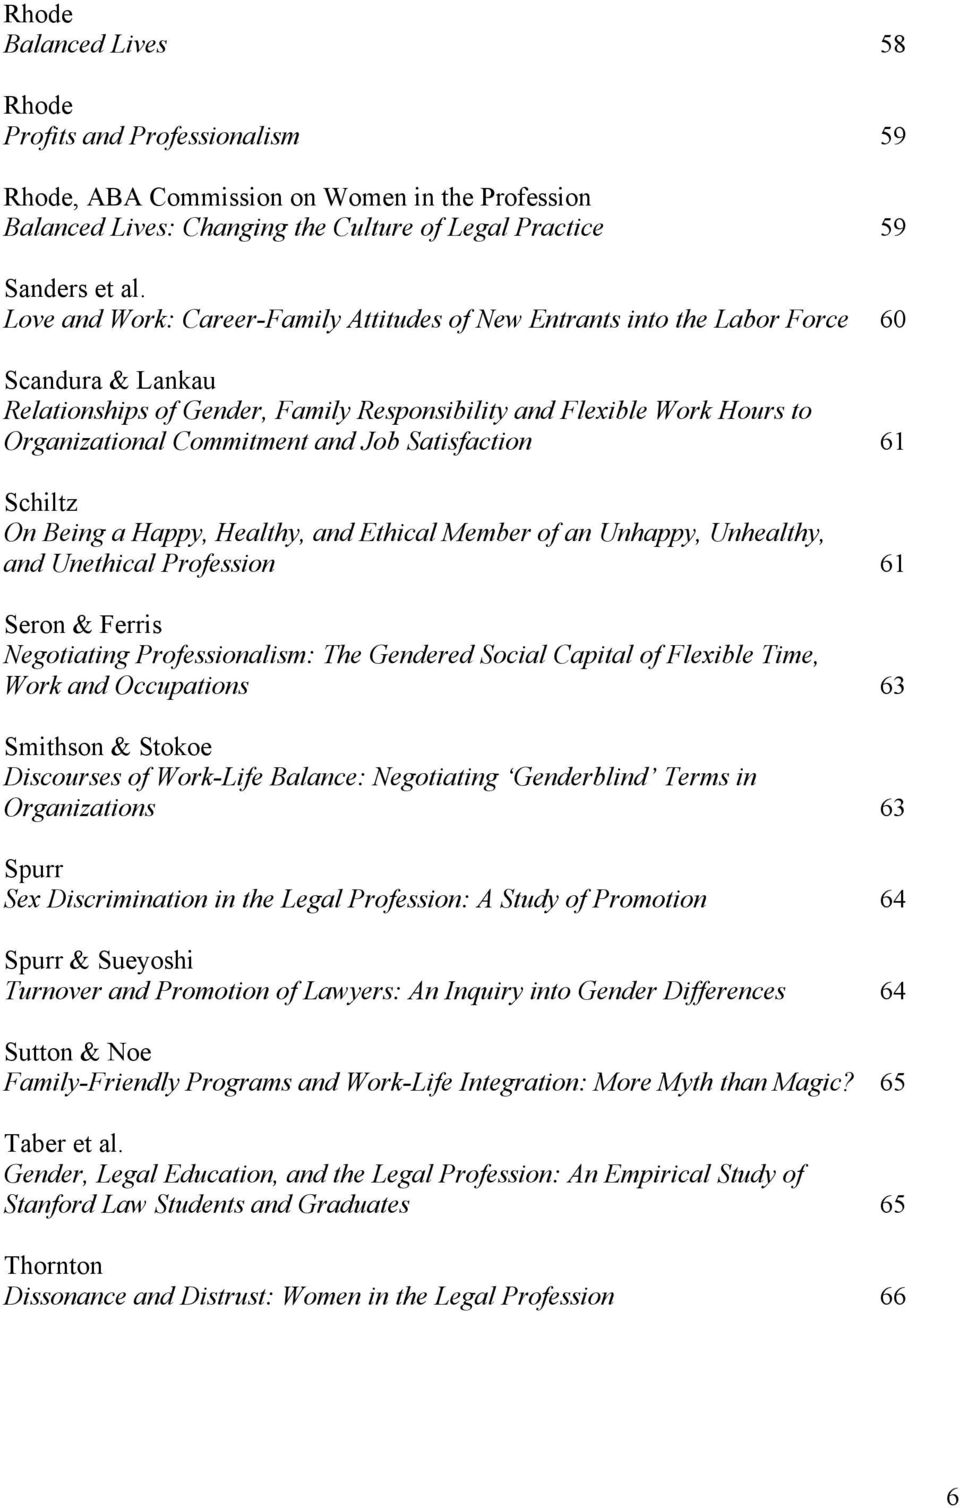 and Job Satisfaction 61 Schiltz On Being a Happy, Healthy, and Ethical Member of an Unhappy, Unhealthy, and Unethical Profession 61 Seron & Ferris Negotiating Professionalism: The Gendered Social